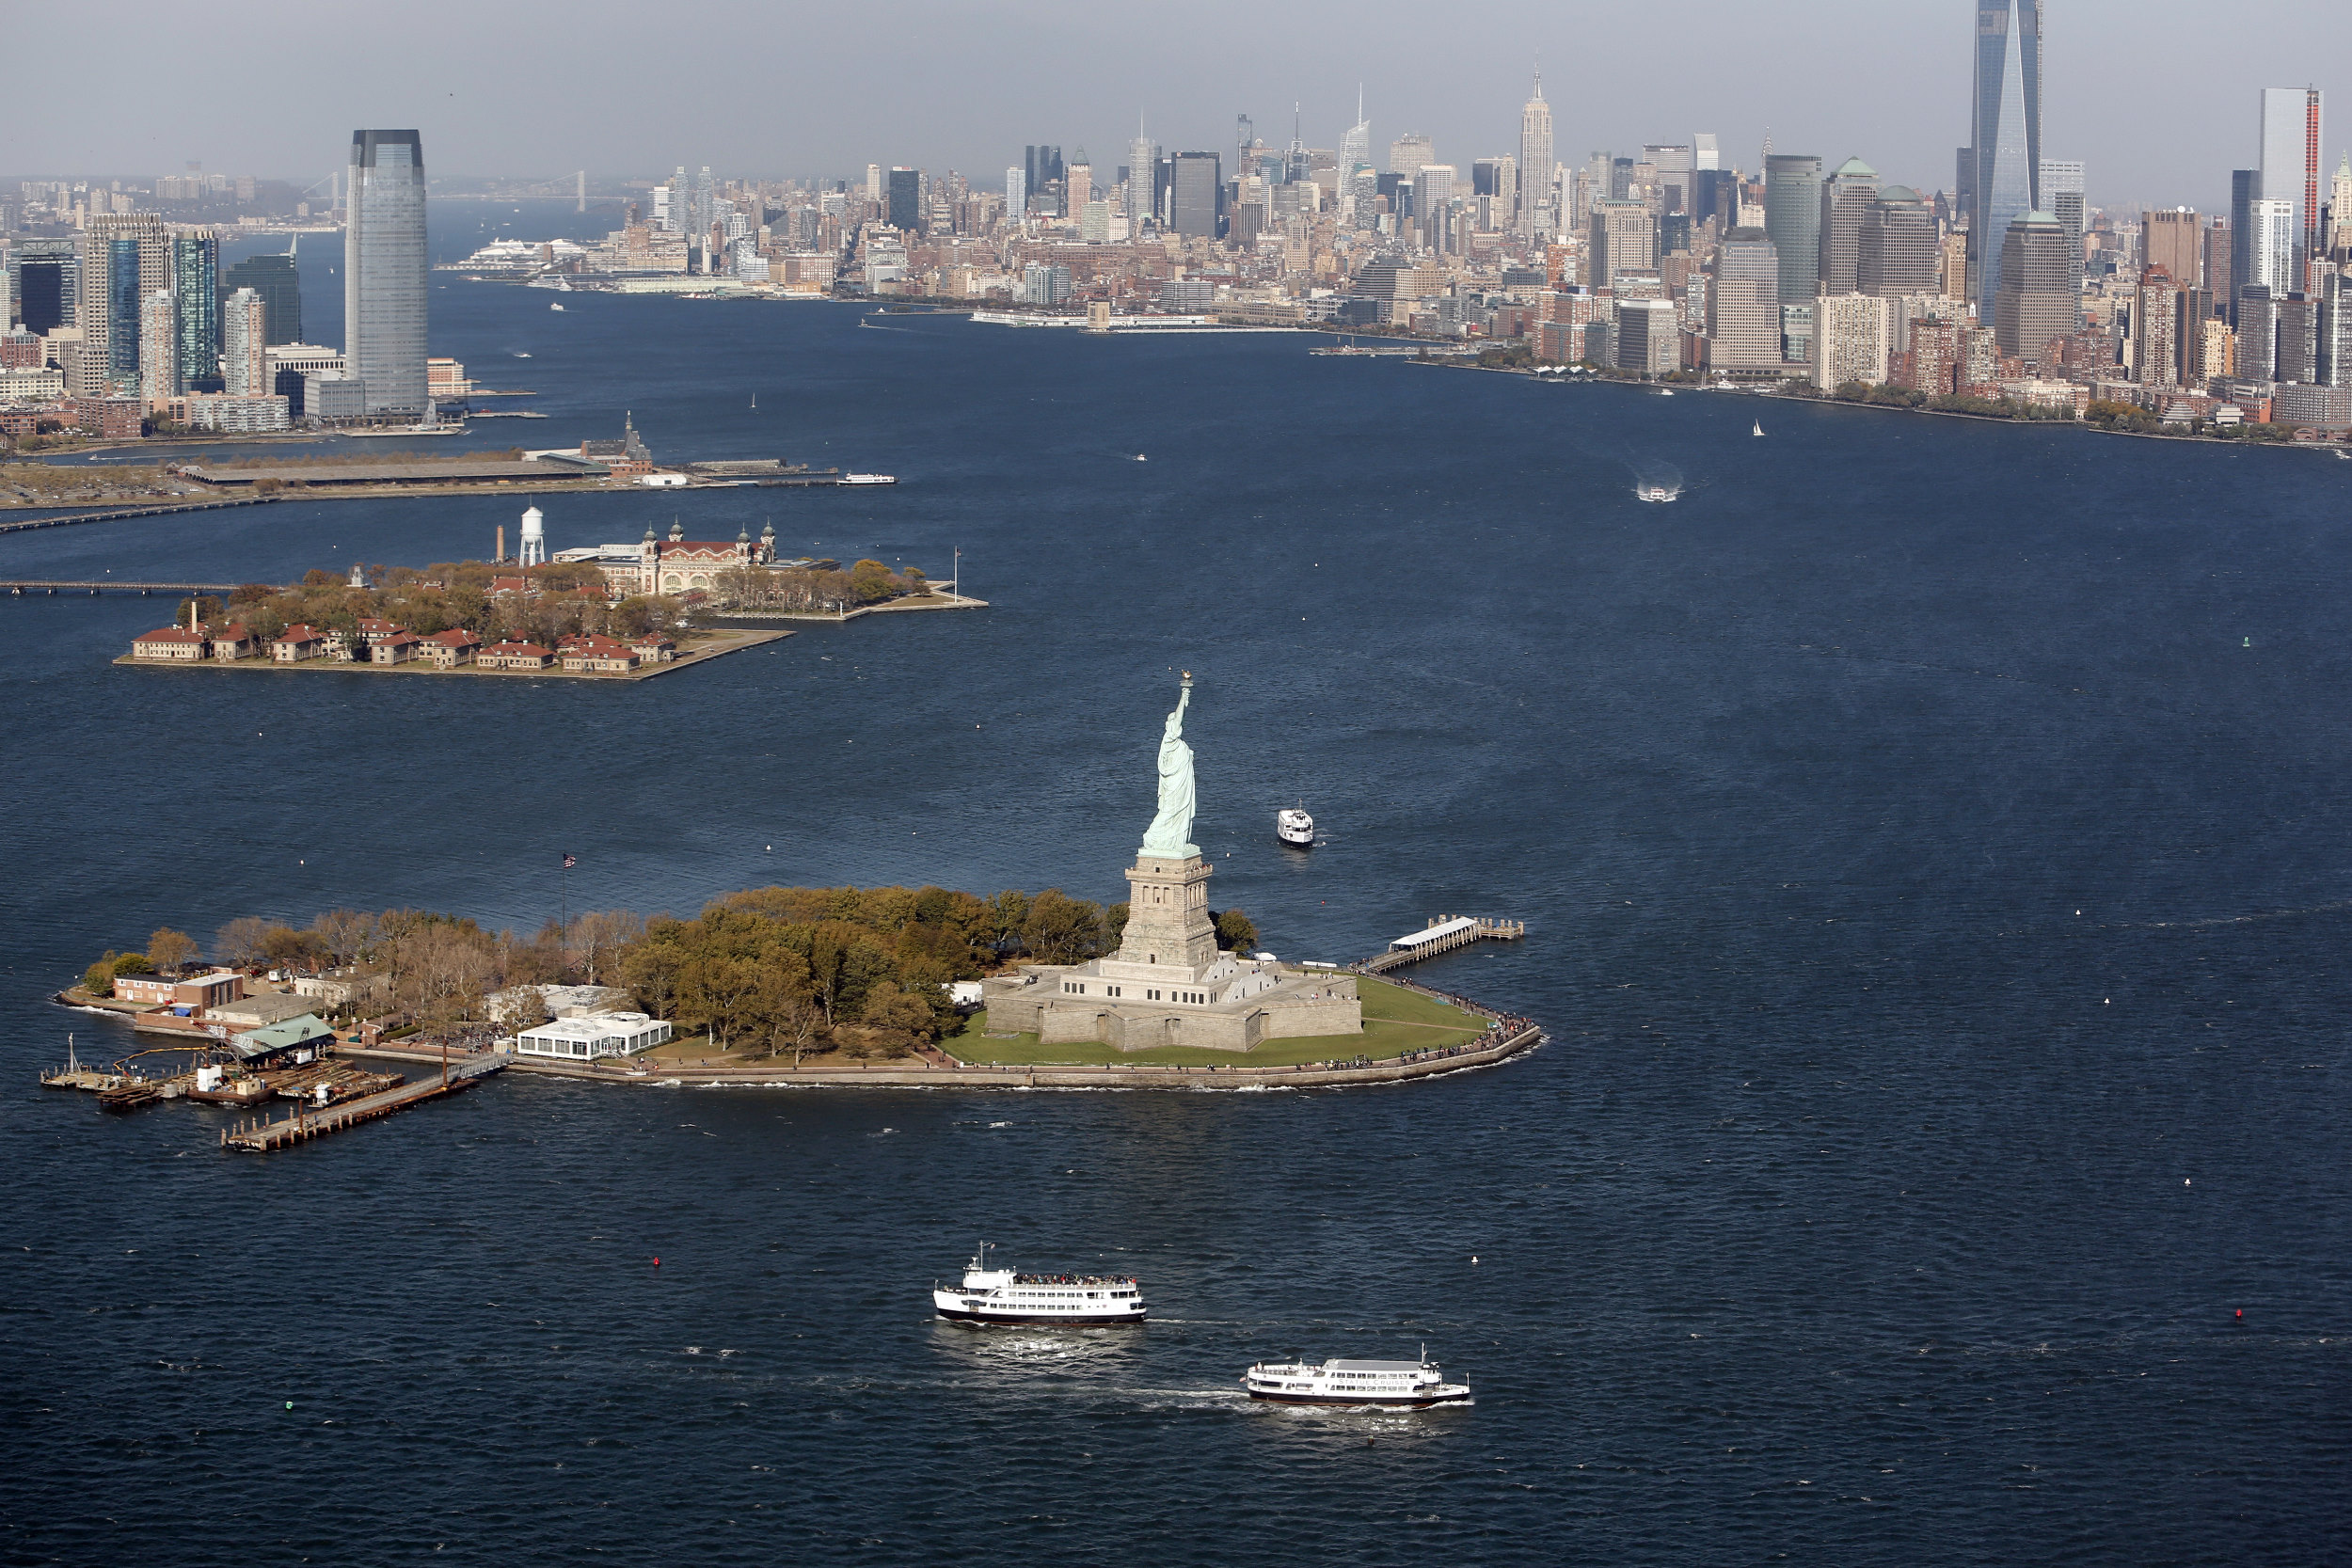 Luchtfoto uitzicht USA Verenigde Staten New York City Vrijheidsbeeld Liberty Island skyline Manhattan Ellis Island